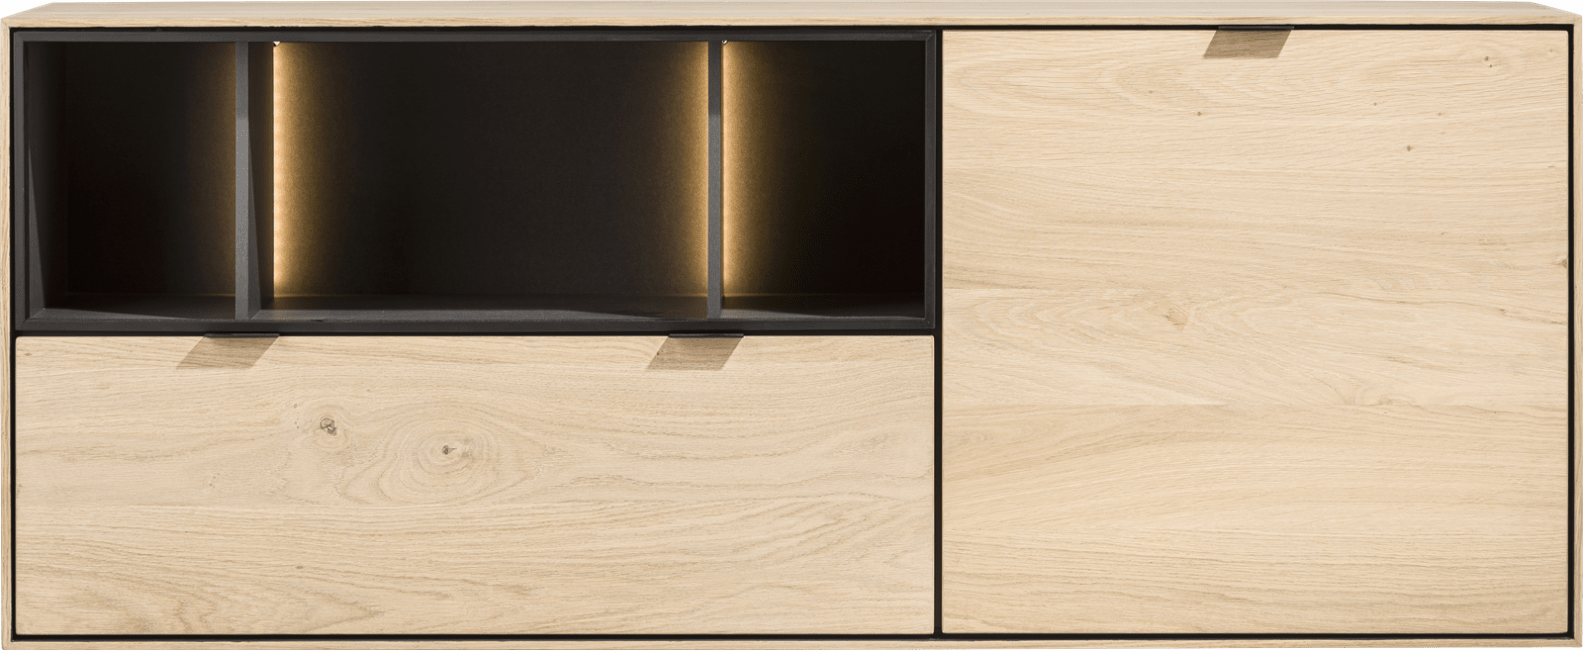 XOOON - Elements - Minimalistisches Design - sideboard 150 cm. - 1-tuer + 1-lade + 3-nischen + led